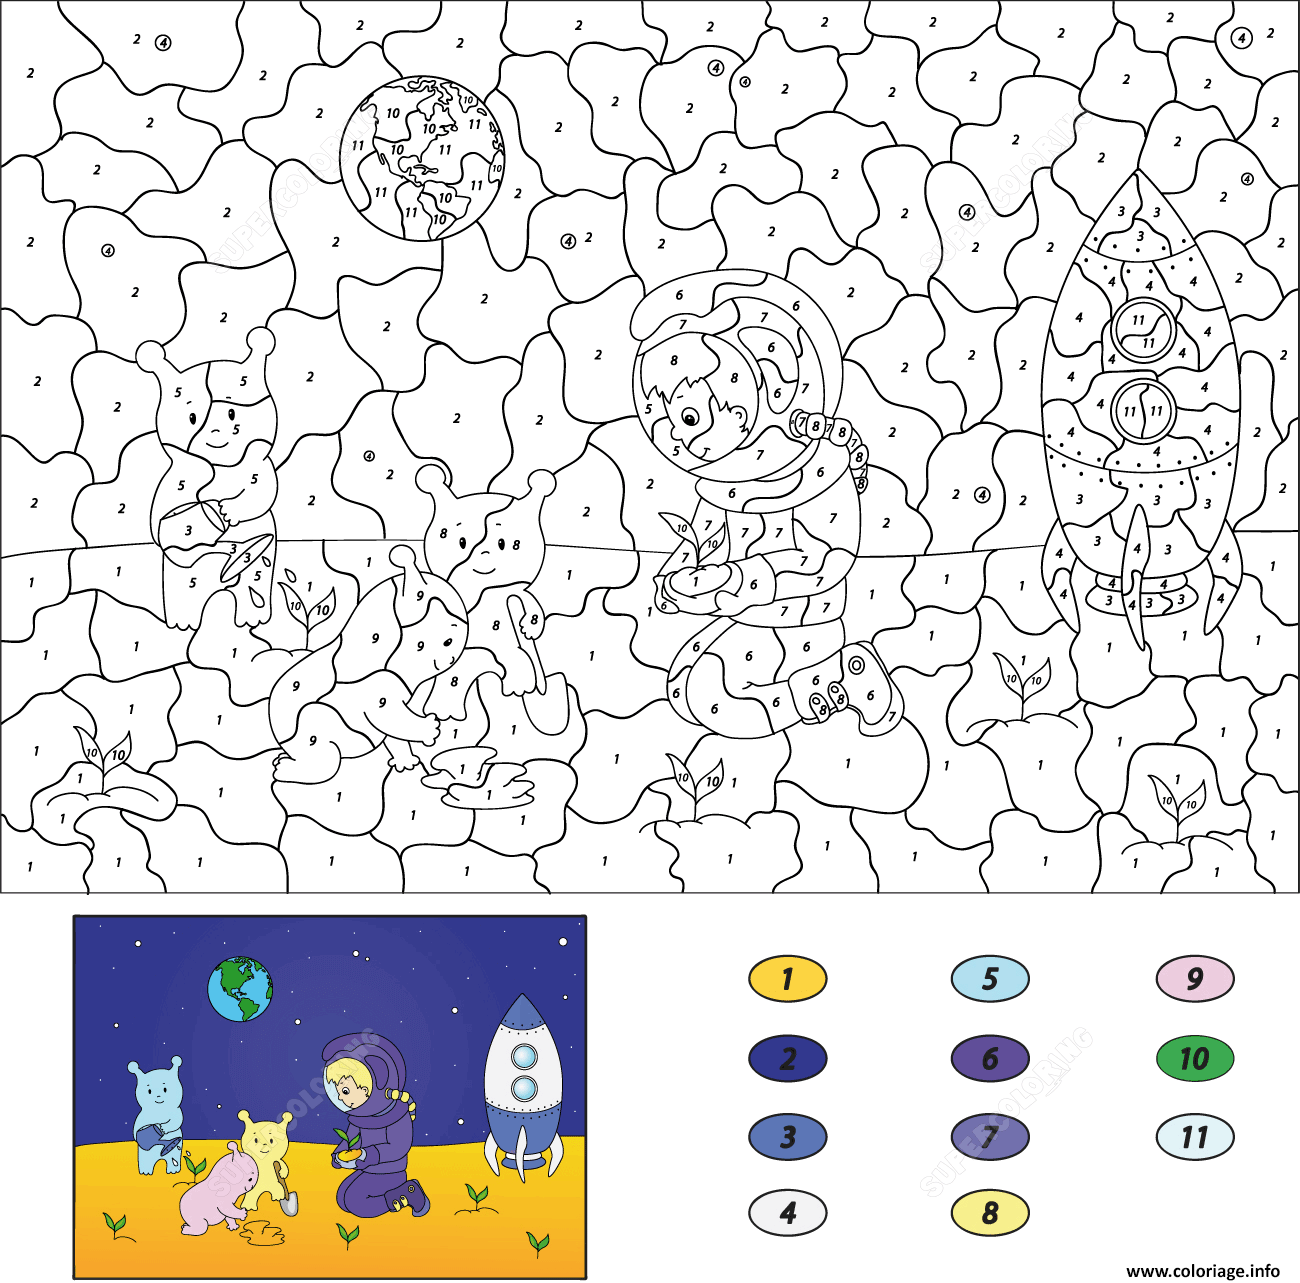 Coloriage Astronaut Boy And Aliens Plant Herbs On The Moon